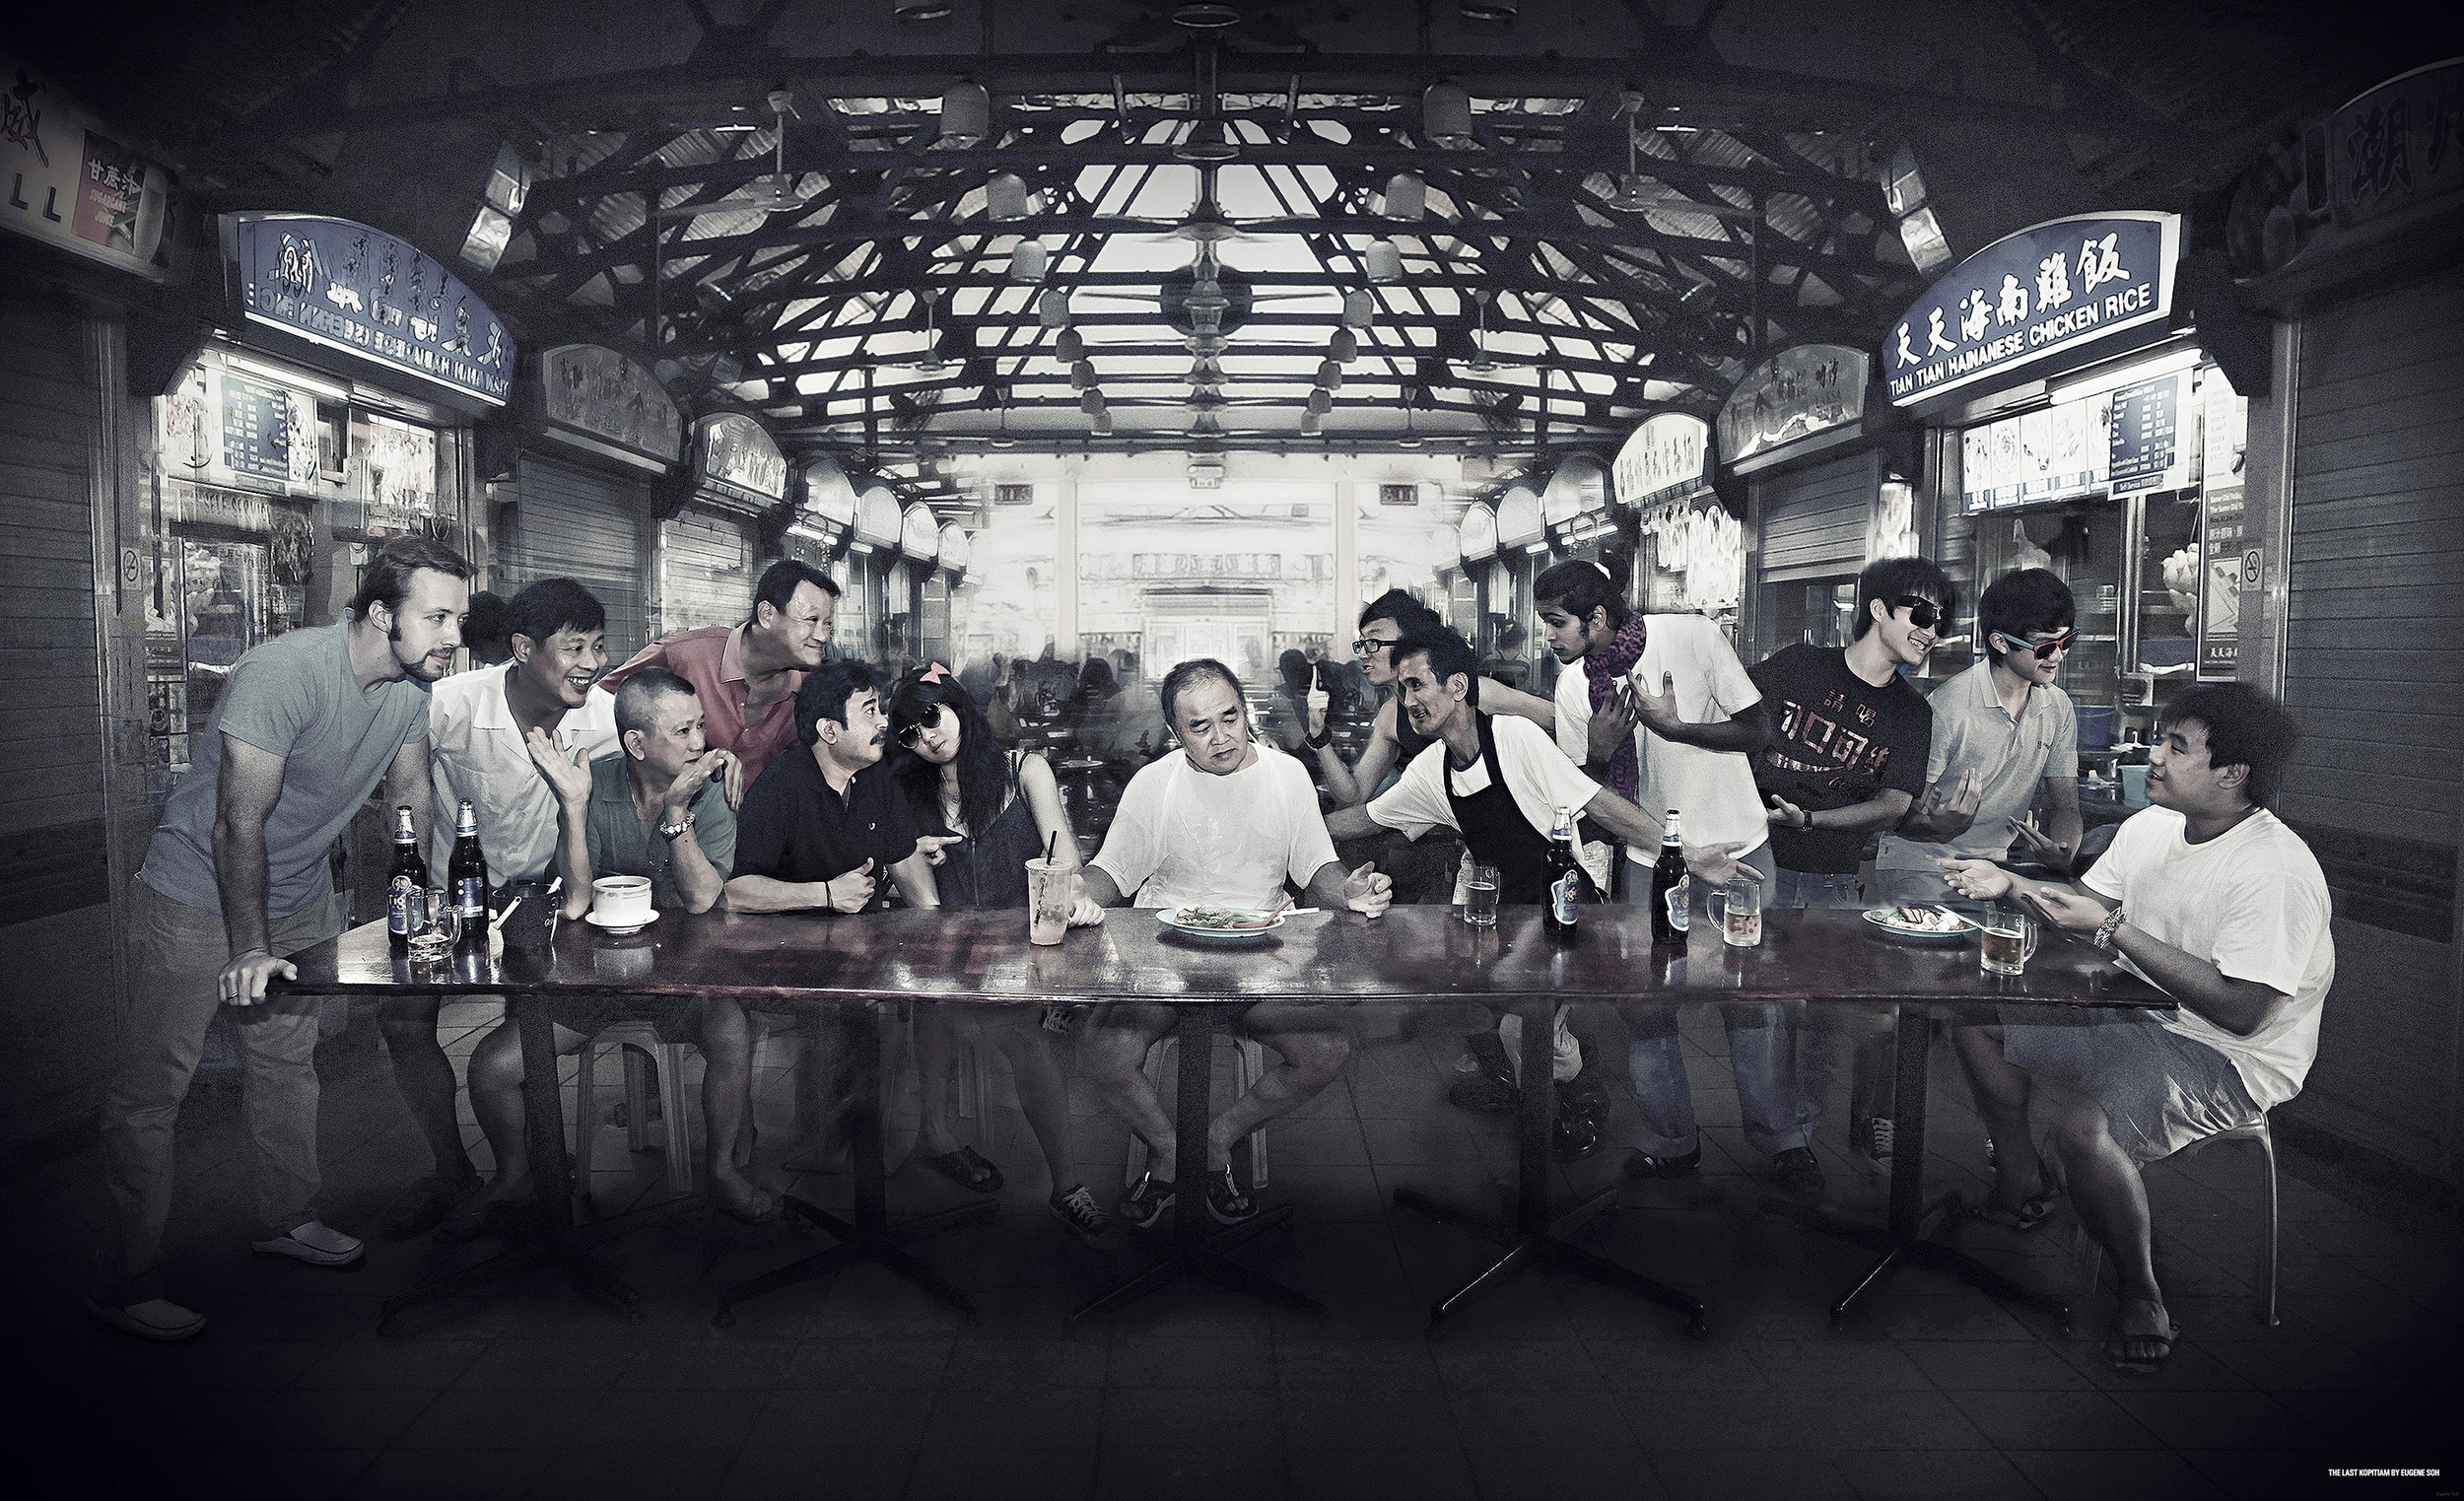 The Last Kopitiam (2010) by Eugene Soh